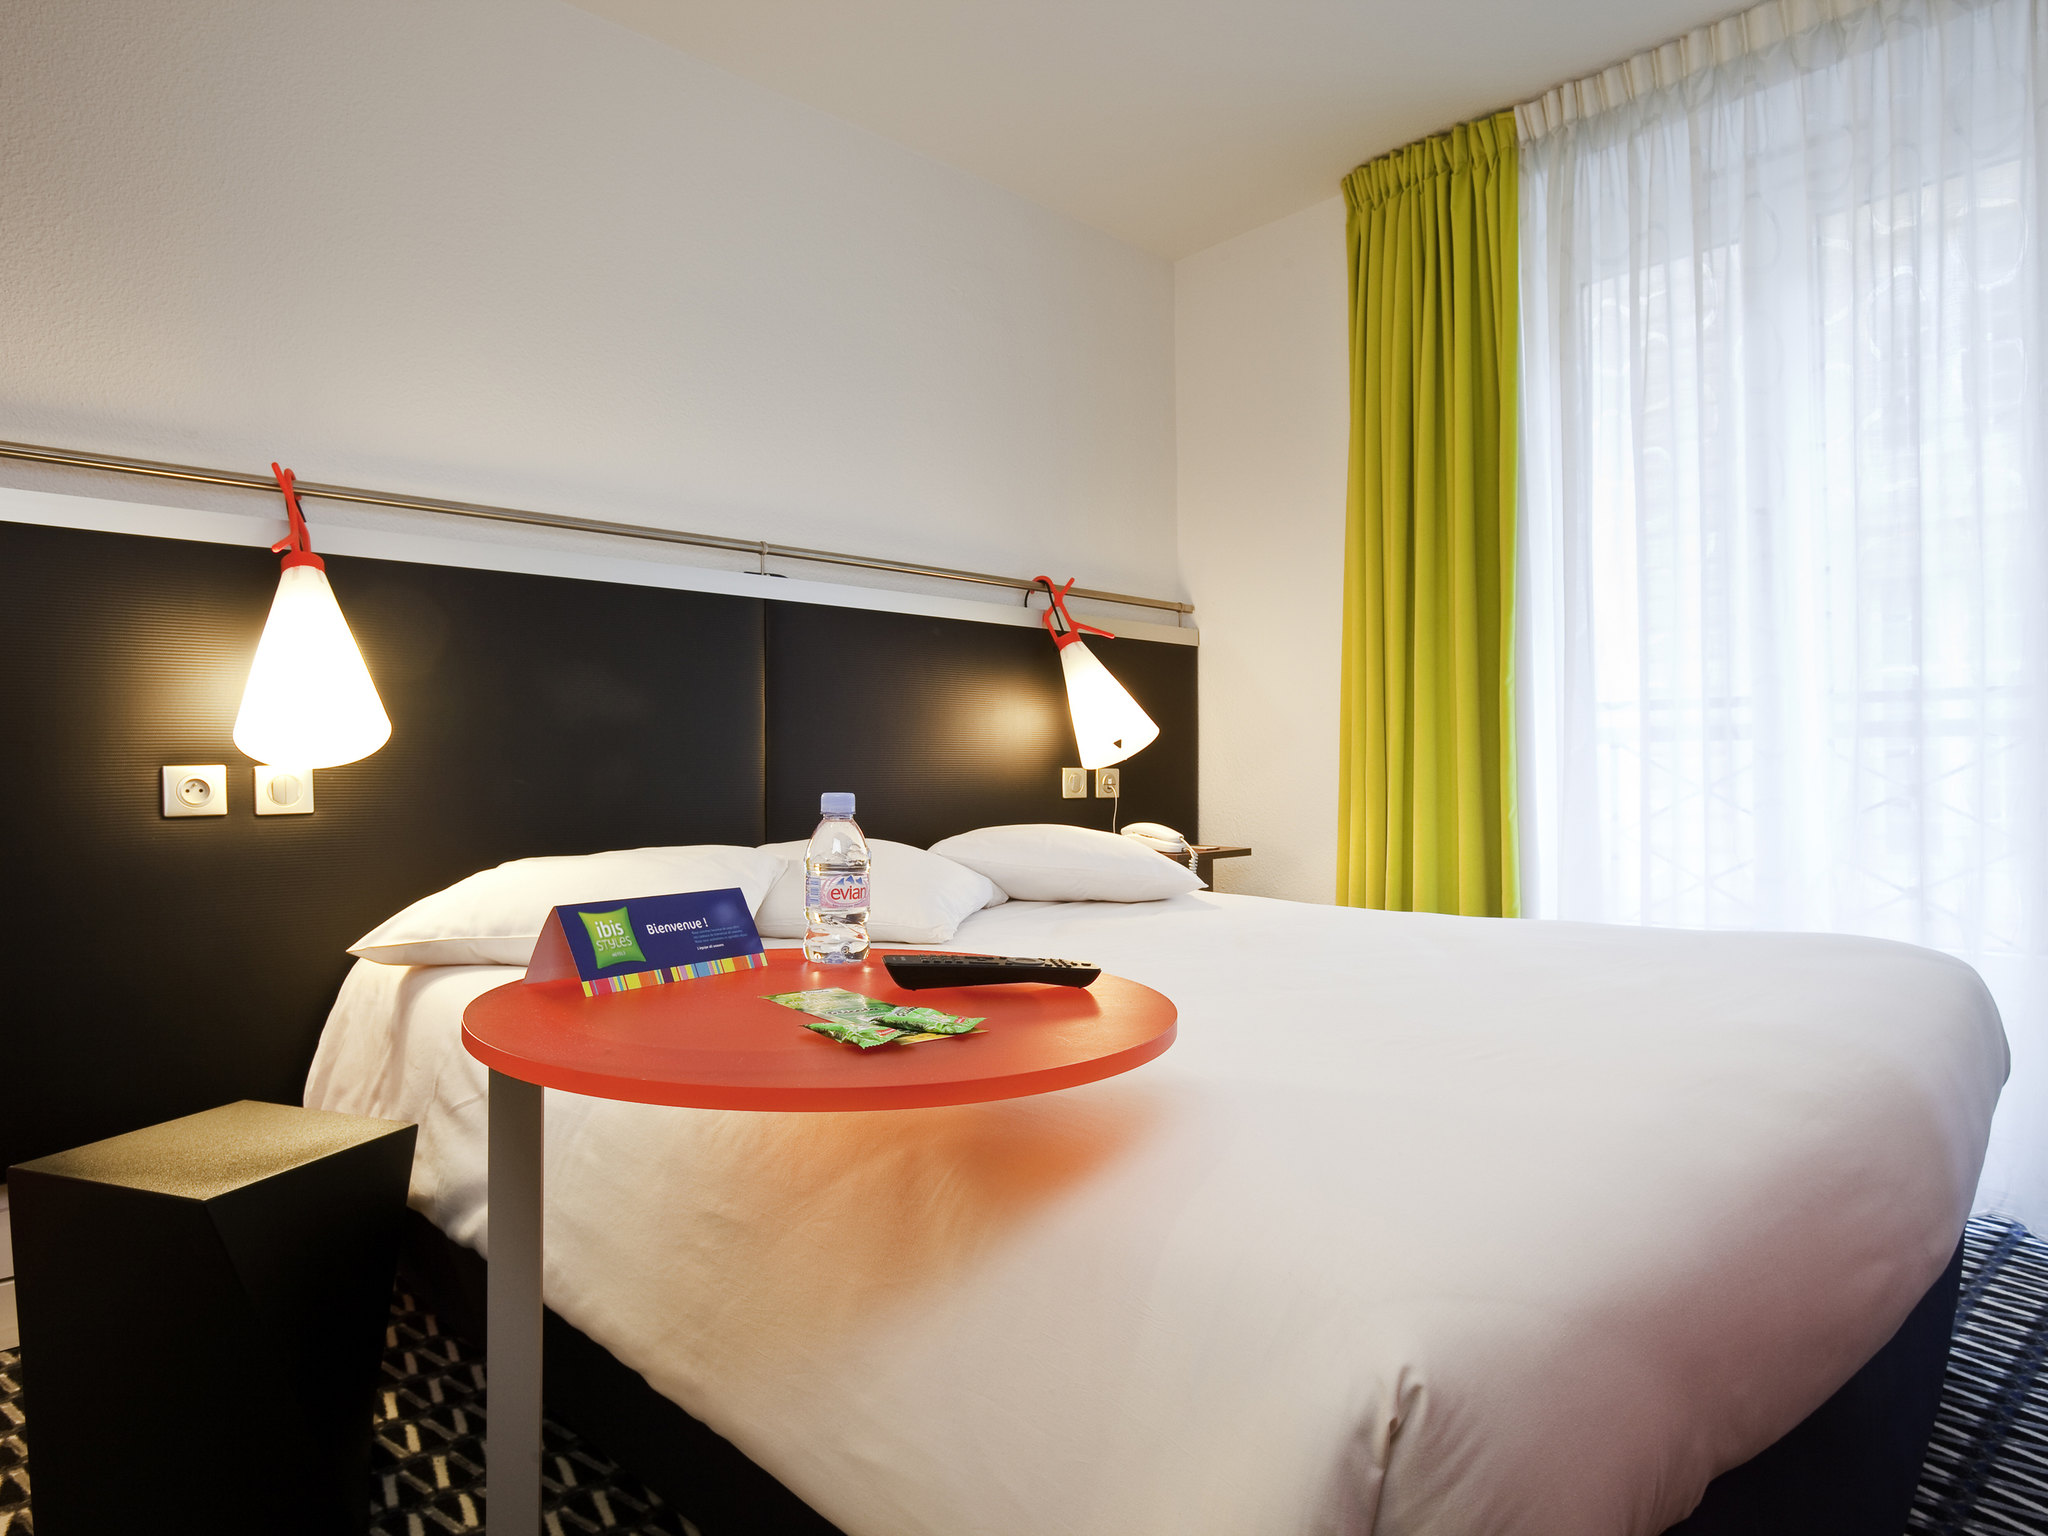 Hotel in paris ibis styles paris r publique le marais for Hotel marais paris